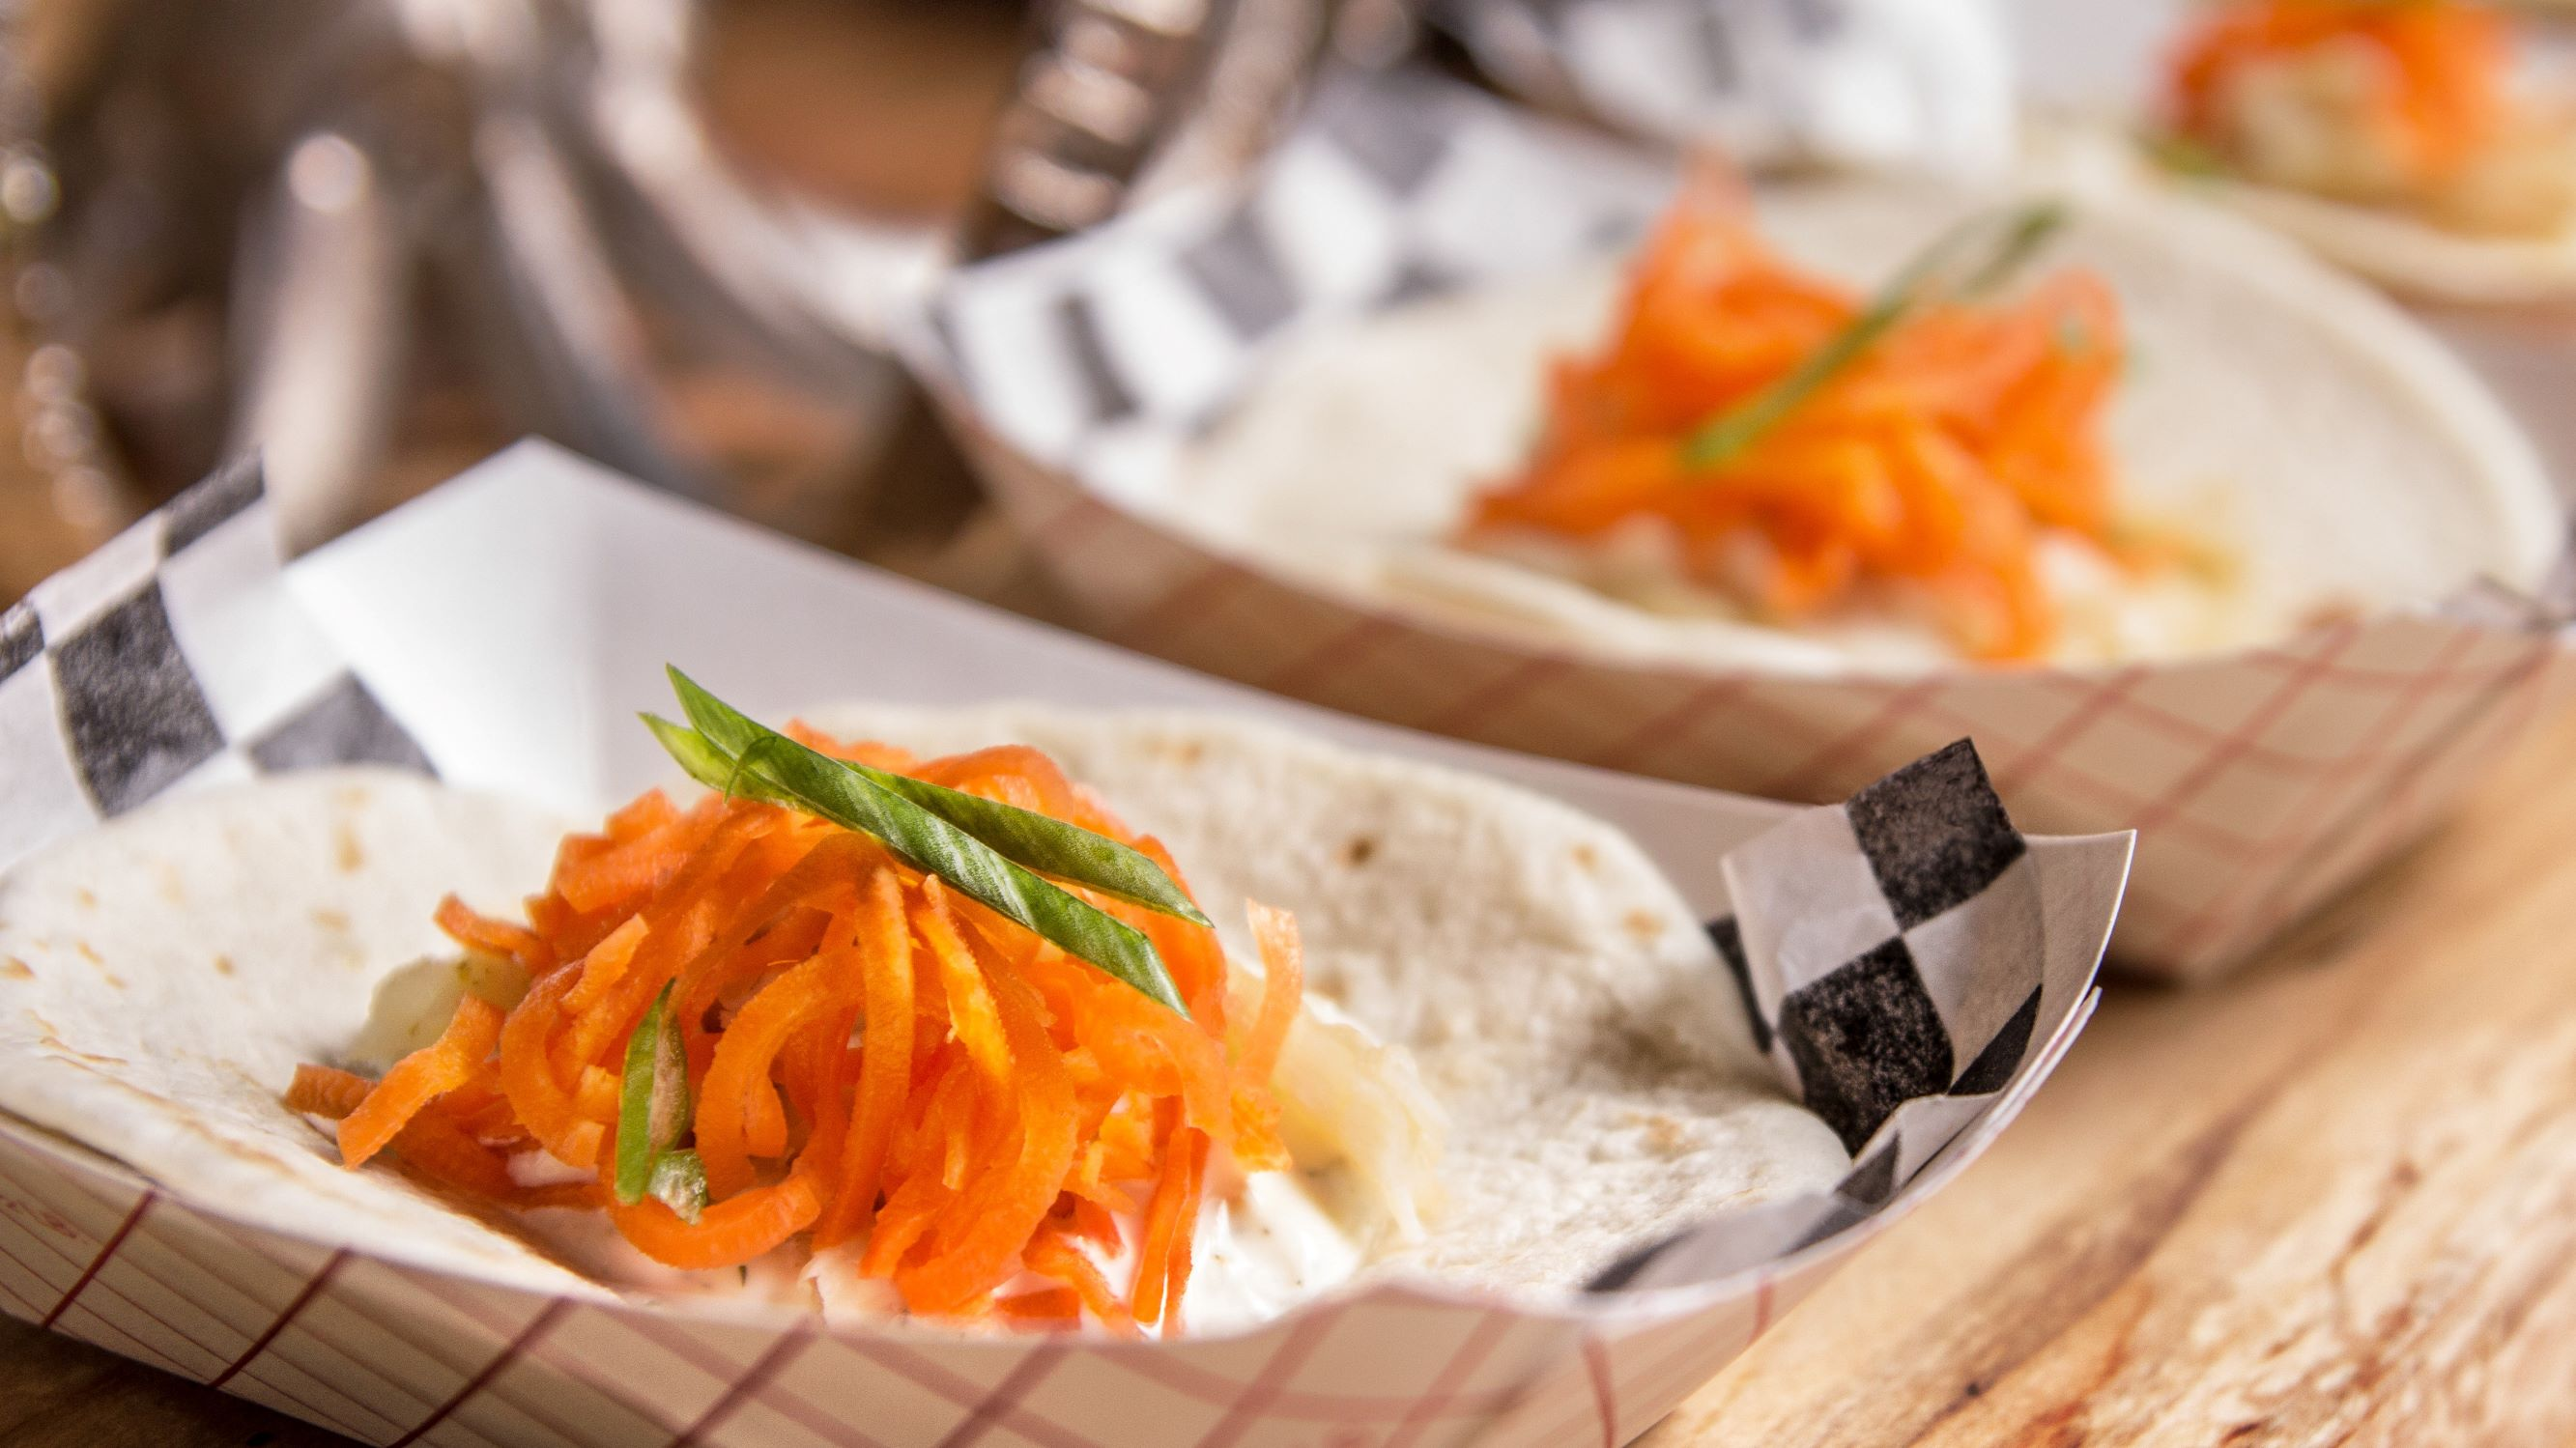 Image for Budget Cooking at the Co-op: Roasted Carrot & Poblano Tacos